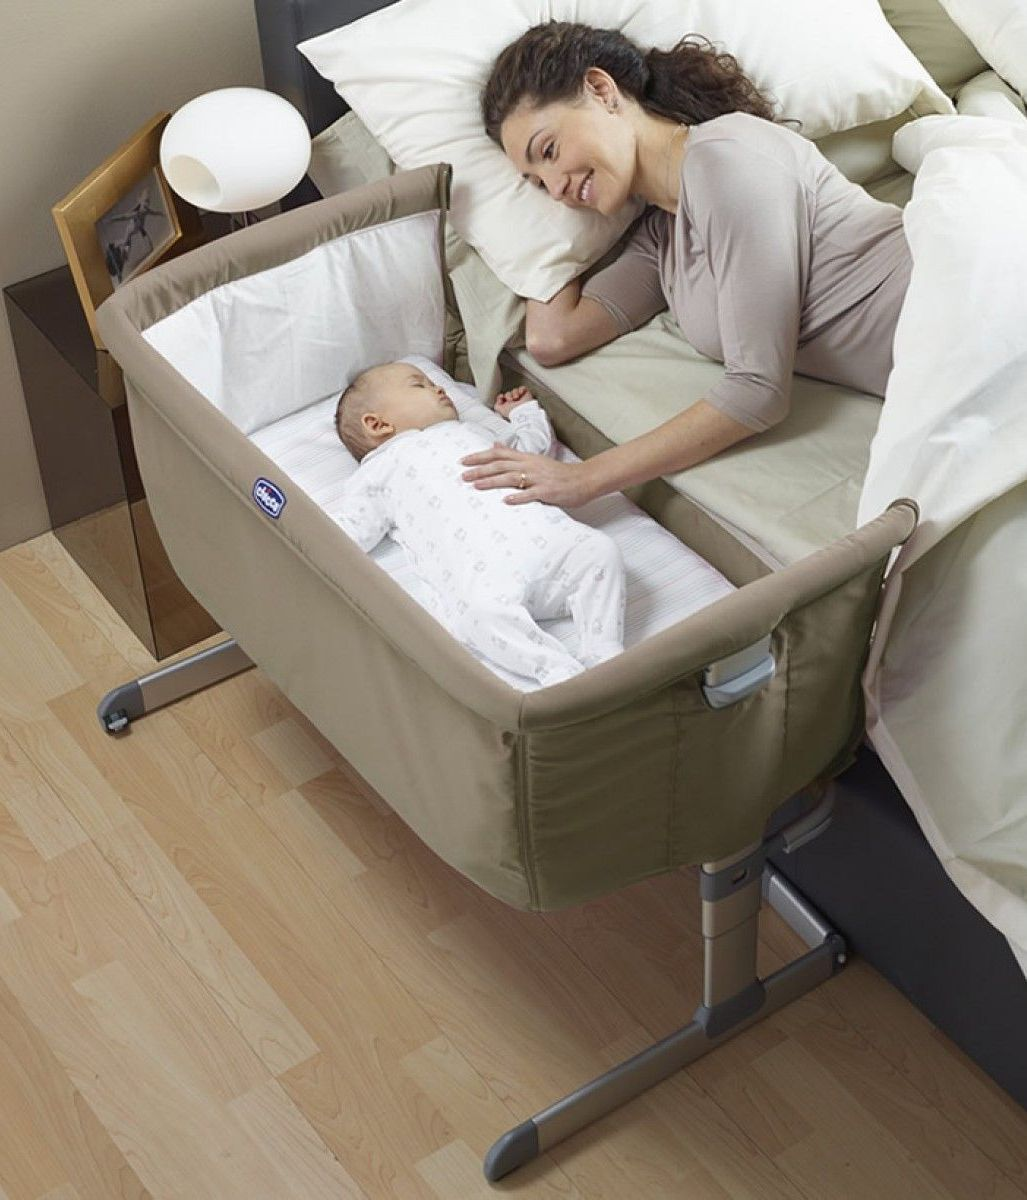 Best Baby Bedside Sleeper Bassinets In 2020 In 2020 Baby Co Sleeper Baby Cot Baby Bassinet